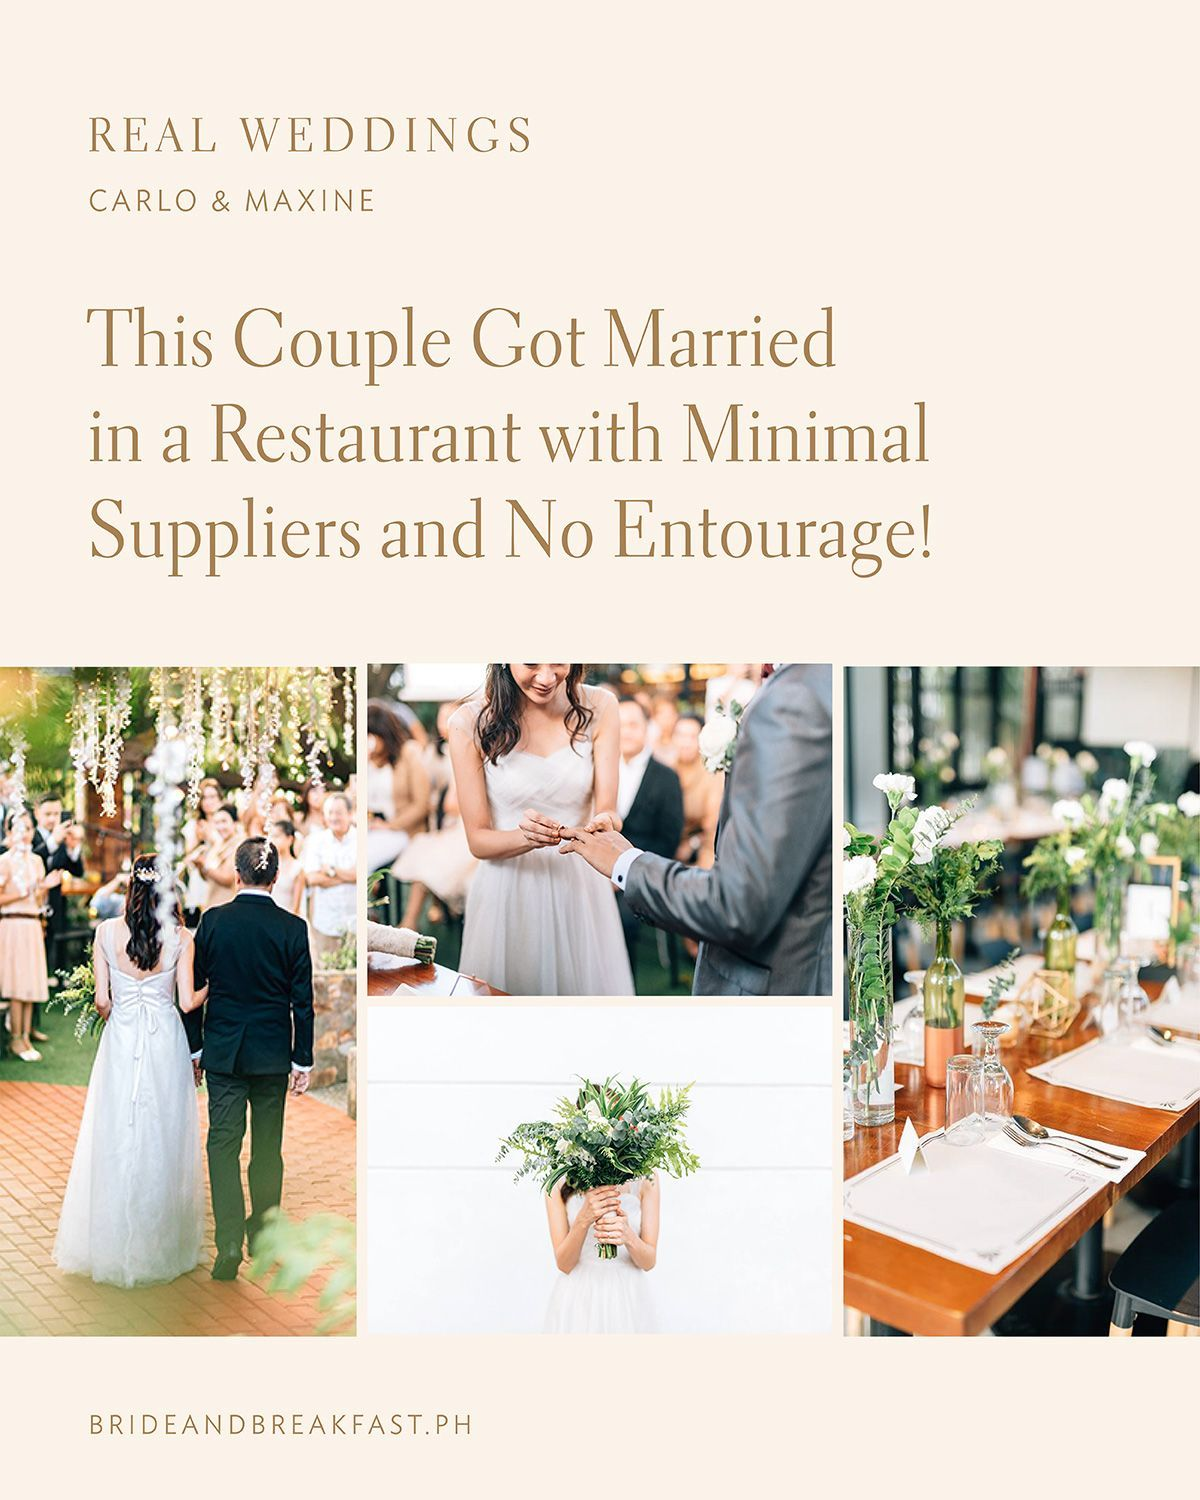 This Couple Got Married In A Restaurant With Minimal Suppliers And No Entourage In 2020 Bride And Breakfast Bride And Breakfast Philippines Civil Wedding